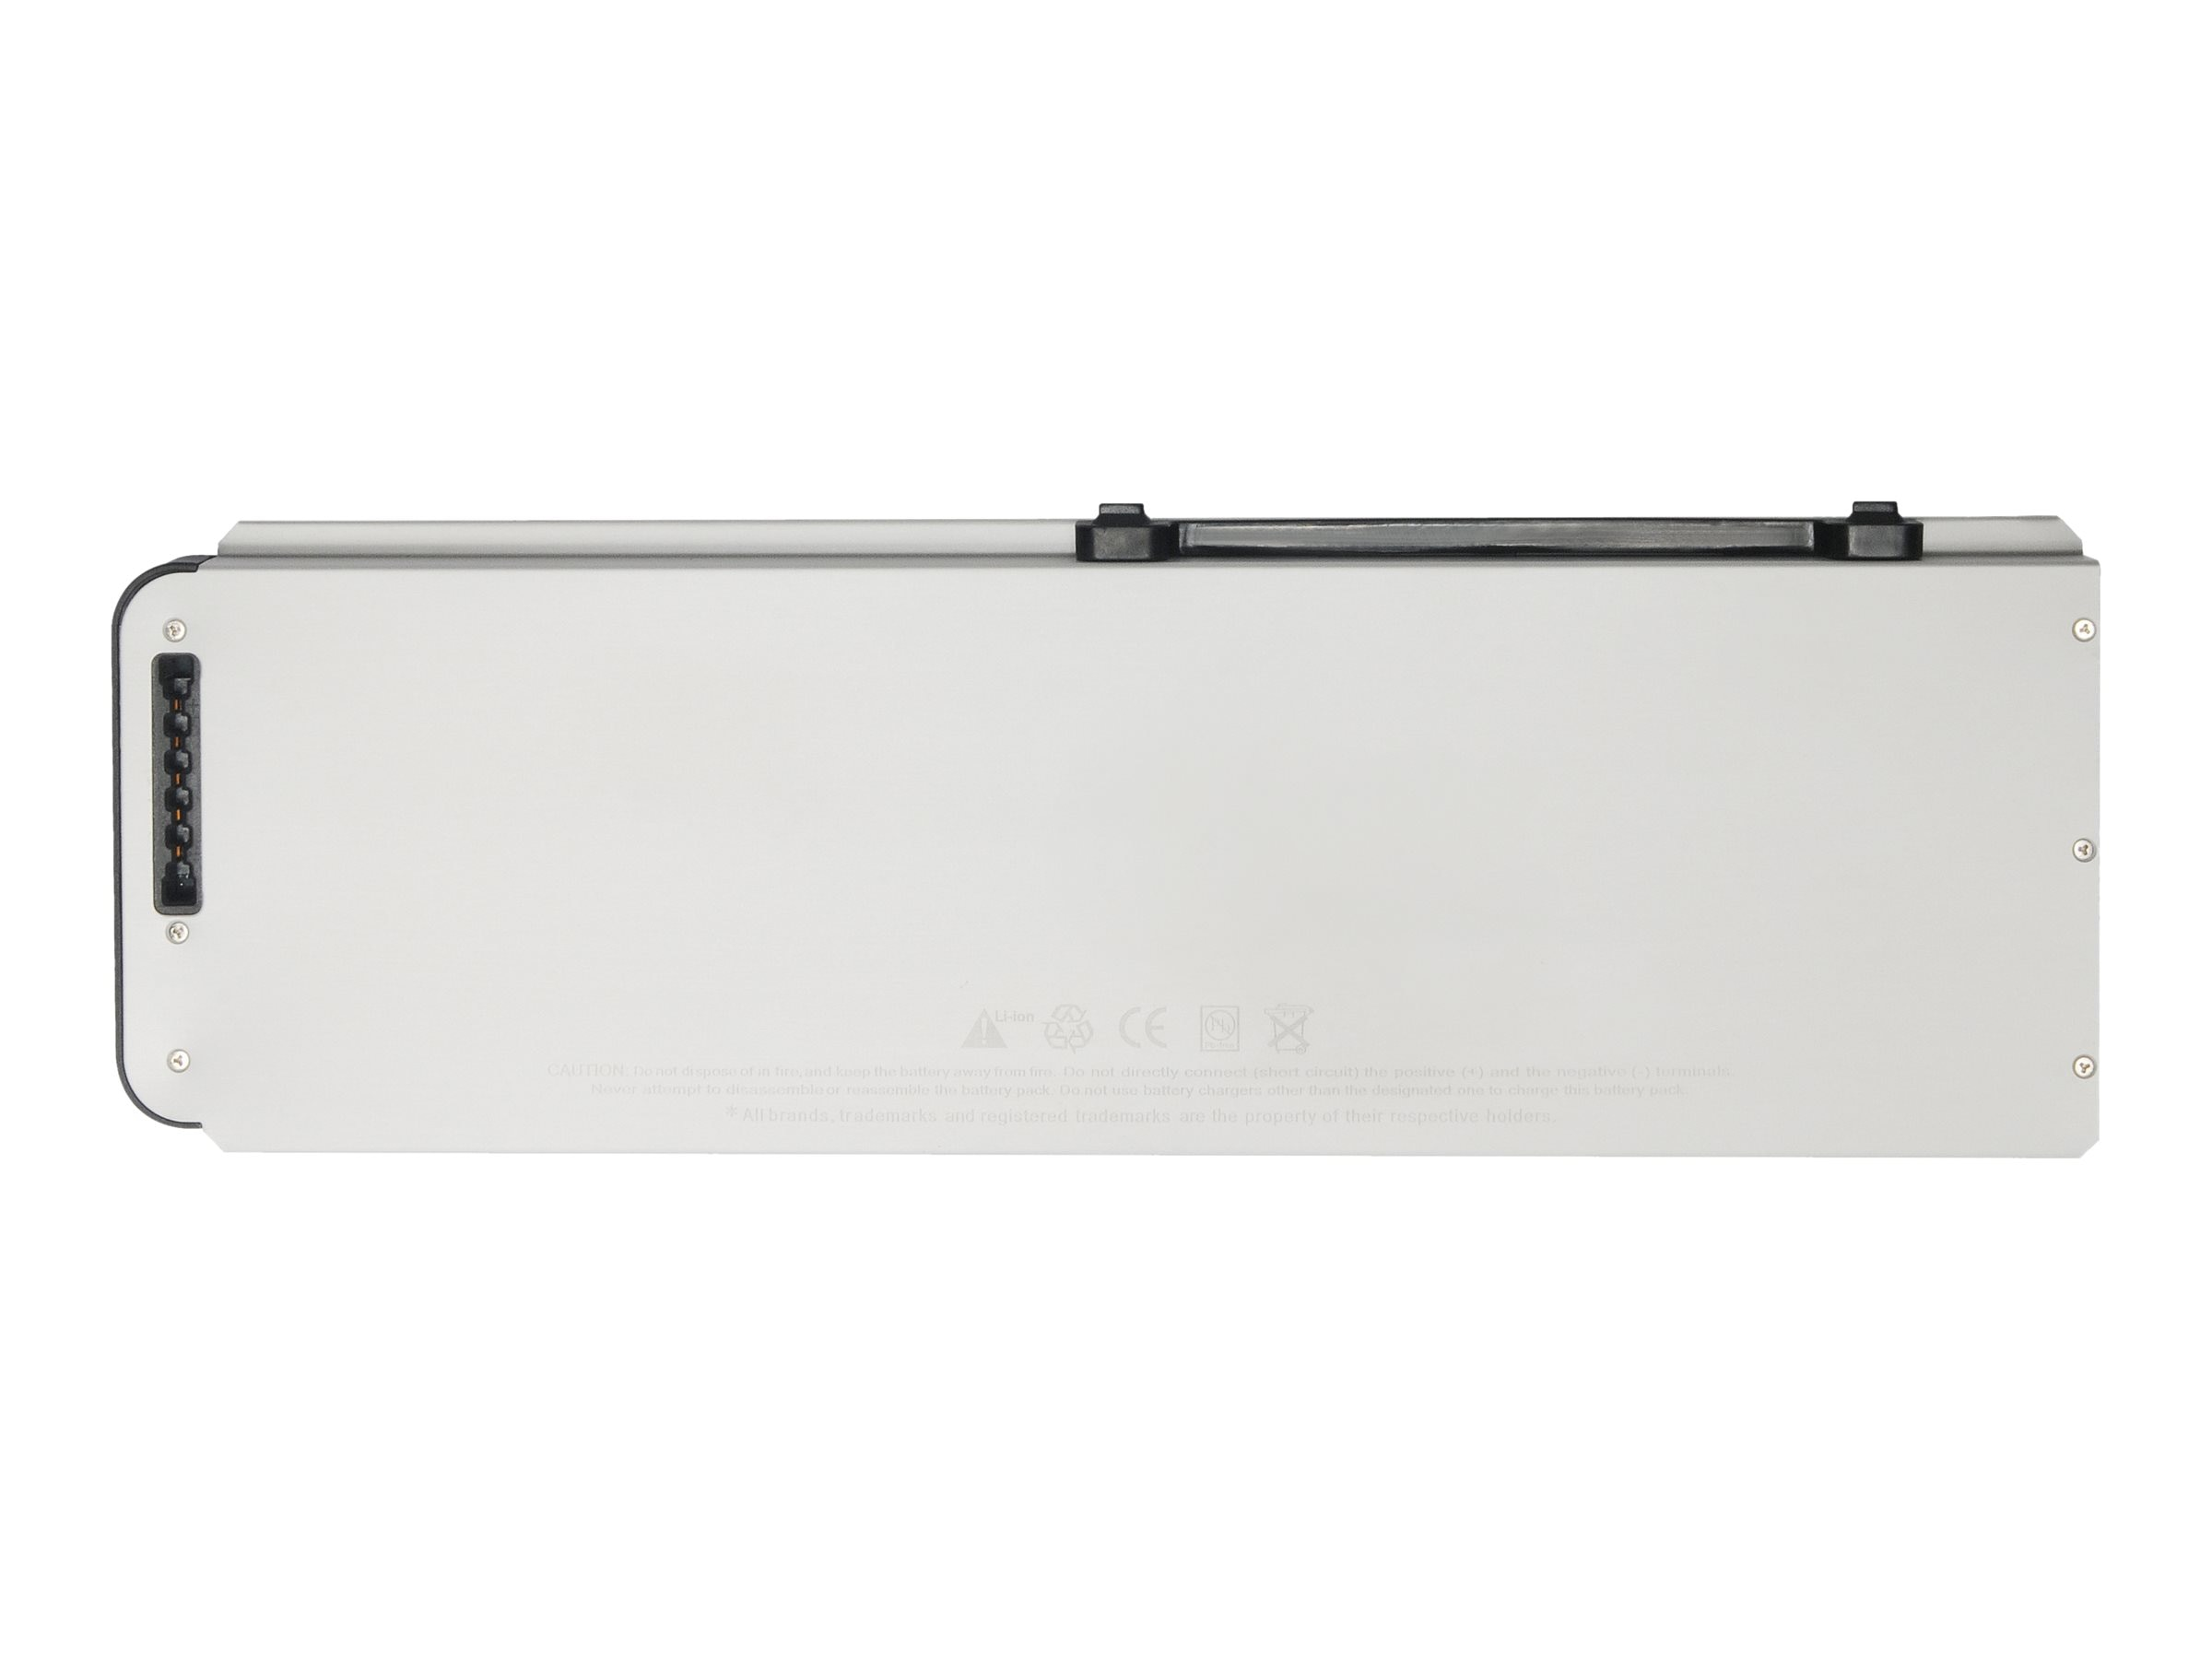 BTI 3-Cell Battery MacBook Pro 15 15.4 Aluminum MB470J A MB470LL A, A1281-BTI, 31283664, Batteries - Notebook